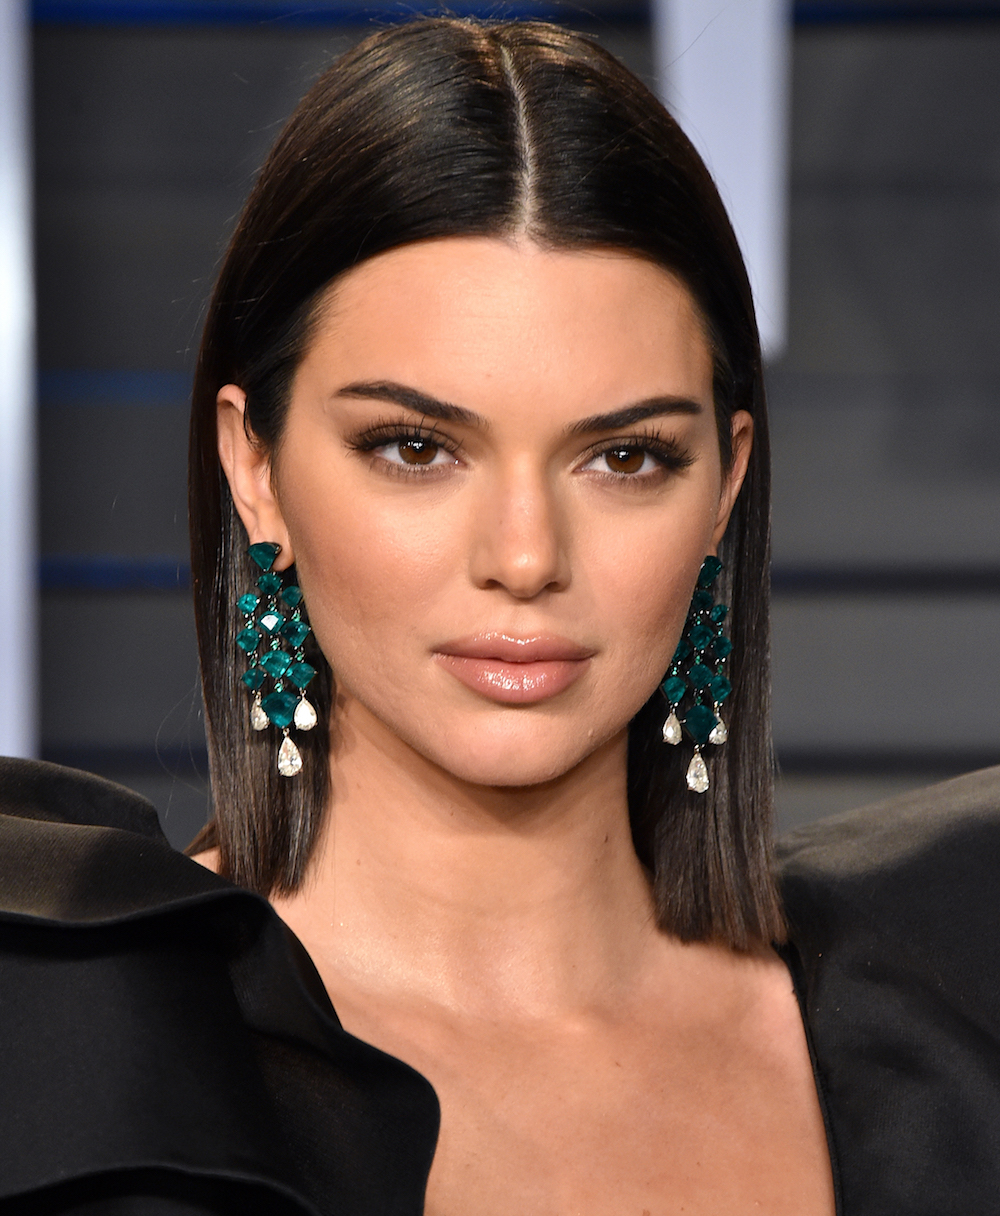 Kendall Jenner wore a dress with the shortest skirt and biggest shoulders we've ever seen